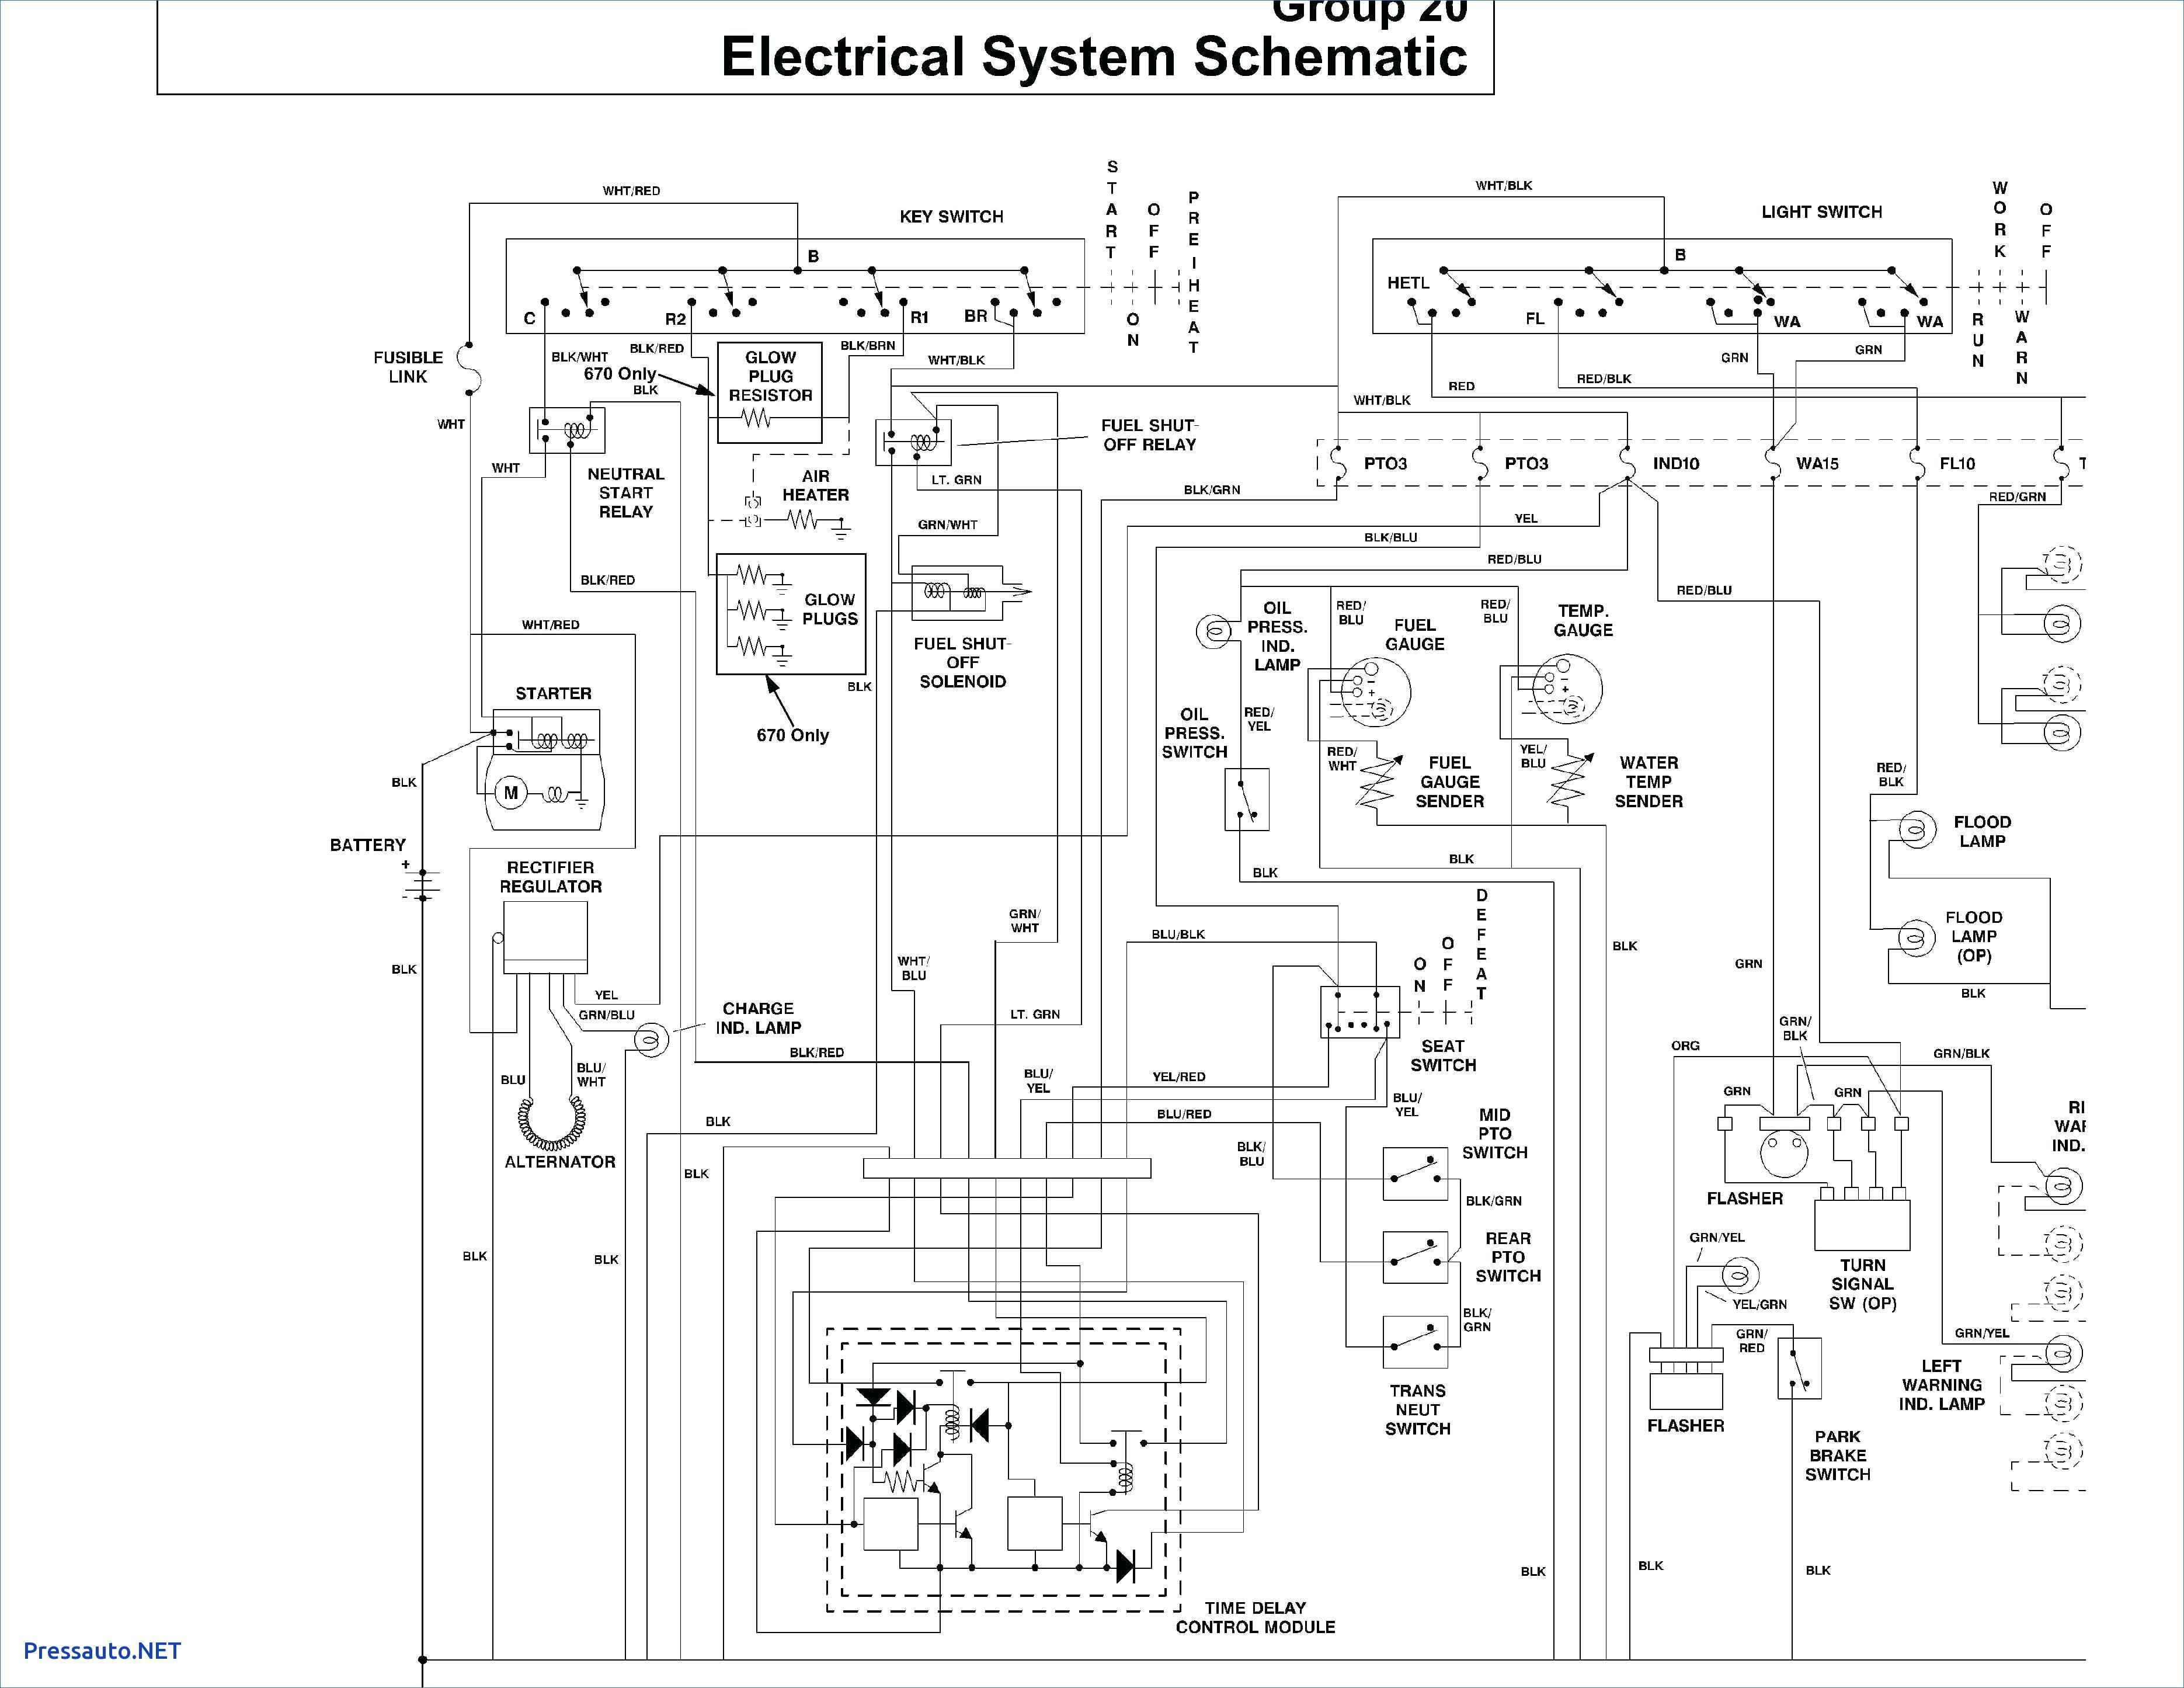 Wiring Diagram 1956 Ford 800 Tractor | Wiring Library - 8N Ford Tractor Wiring Diagram 6 Volt